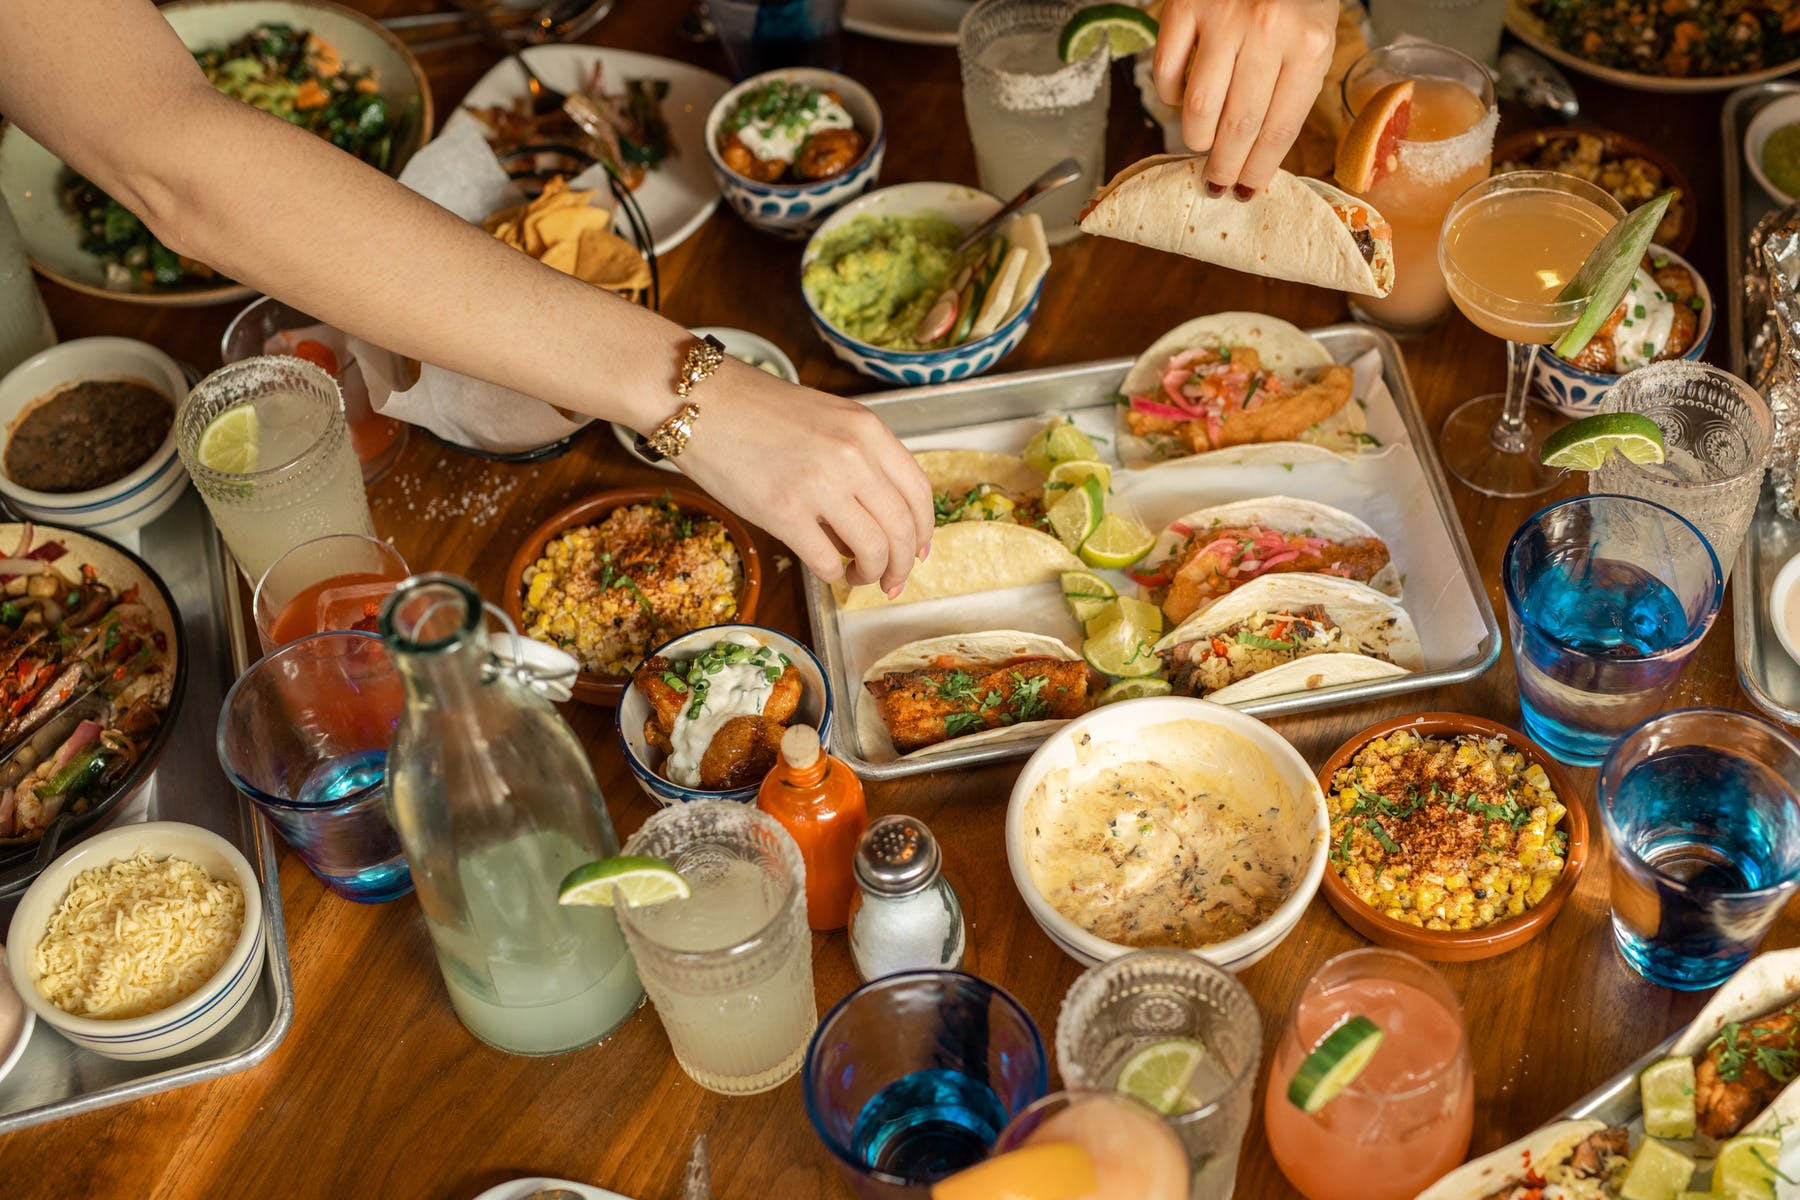 a group of people sitting at a table full of food